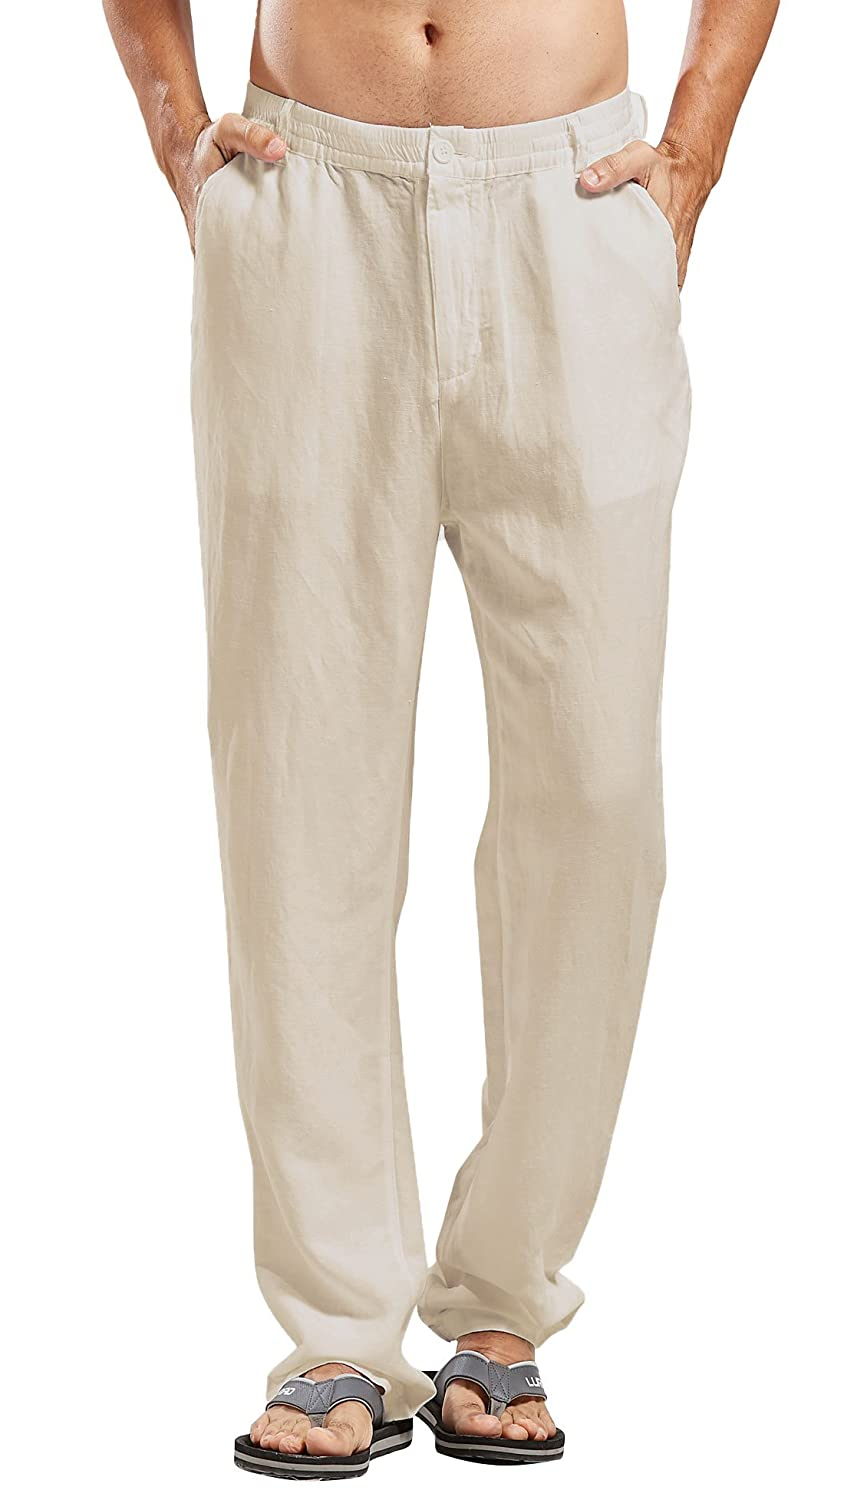 0c36404388 Chartou Man's Summer Casual Stretched Waist Loose Fit Linen Beach Pants at  Amazon Men's Clothing store: